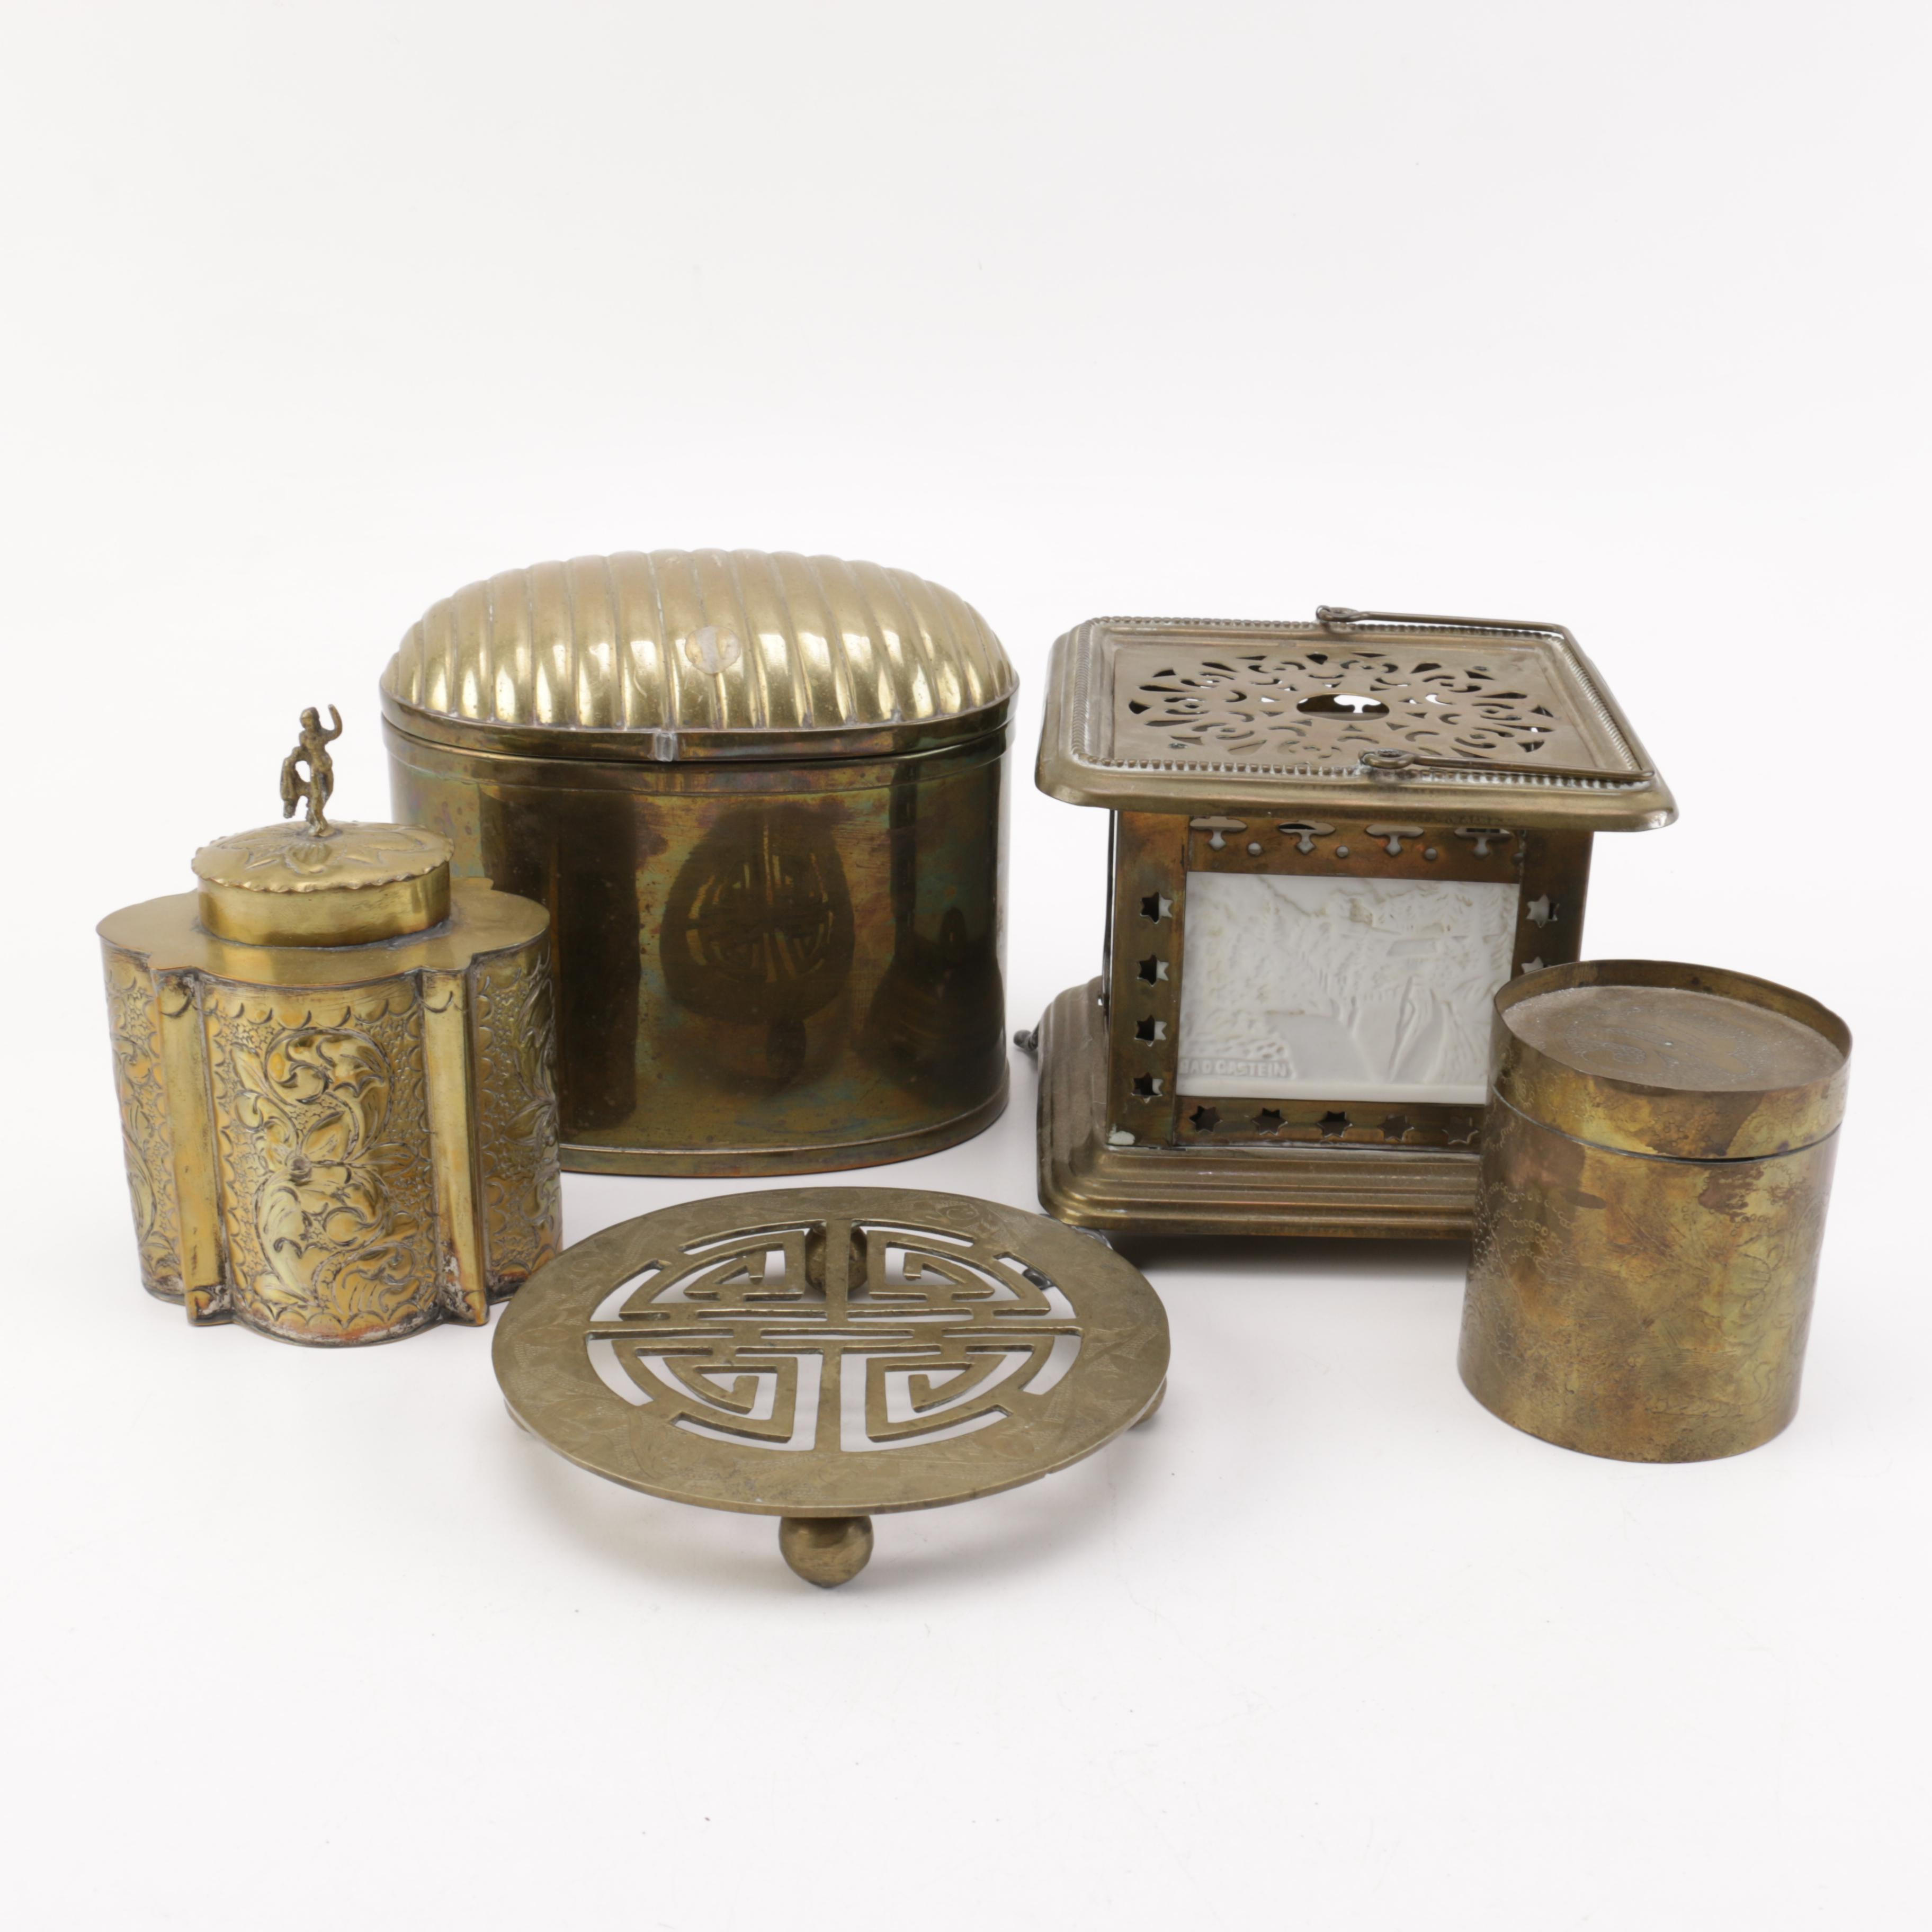 Brass Boxes, Oil Lamp and Other Decor